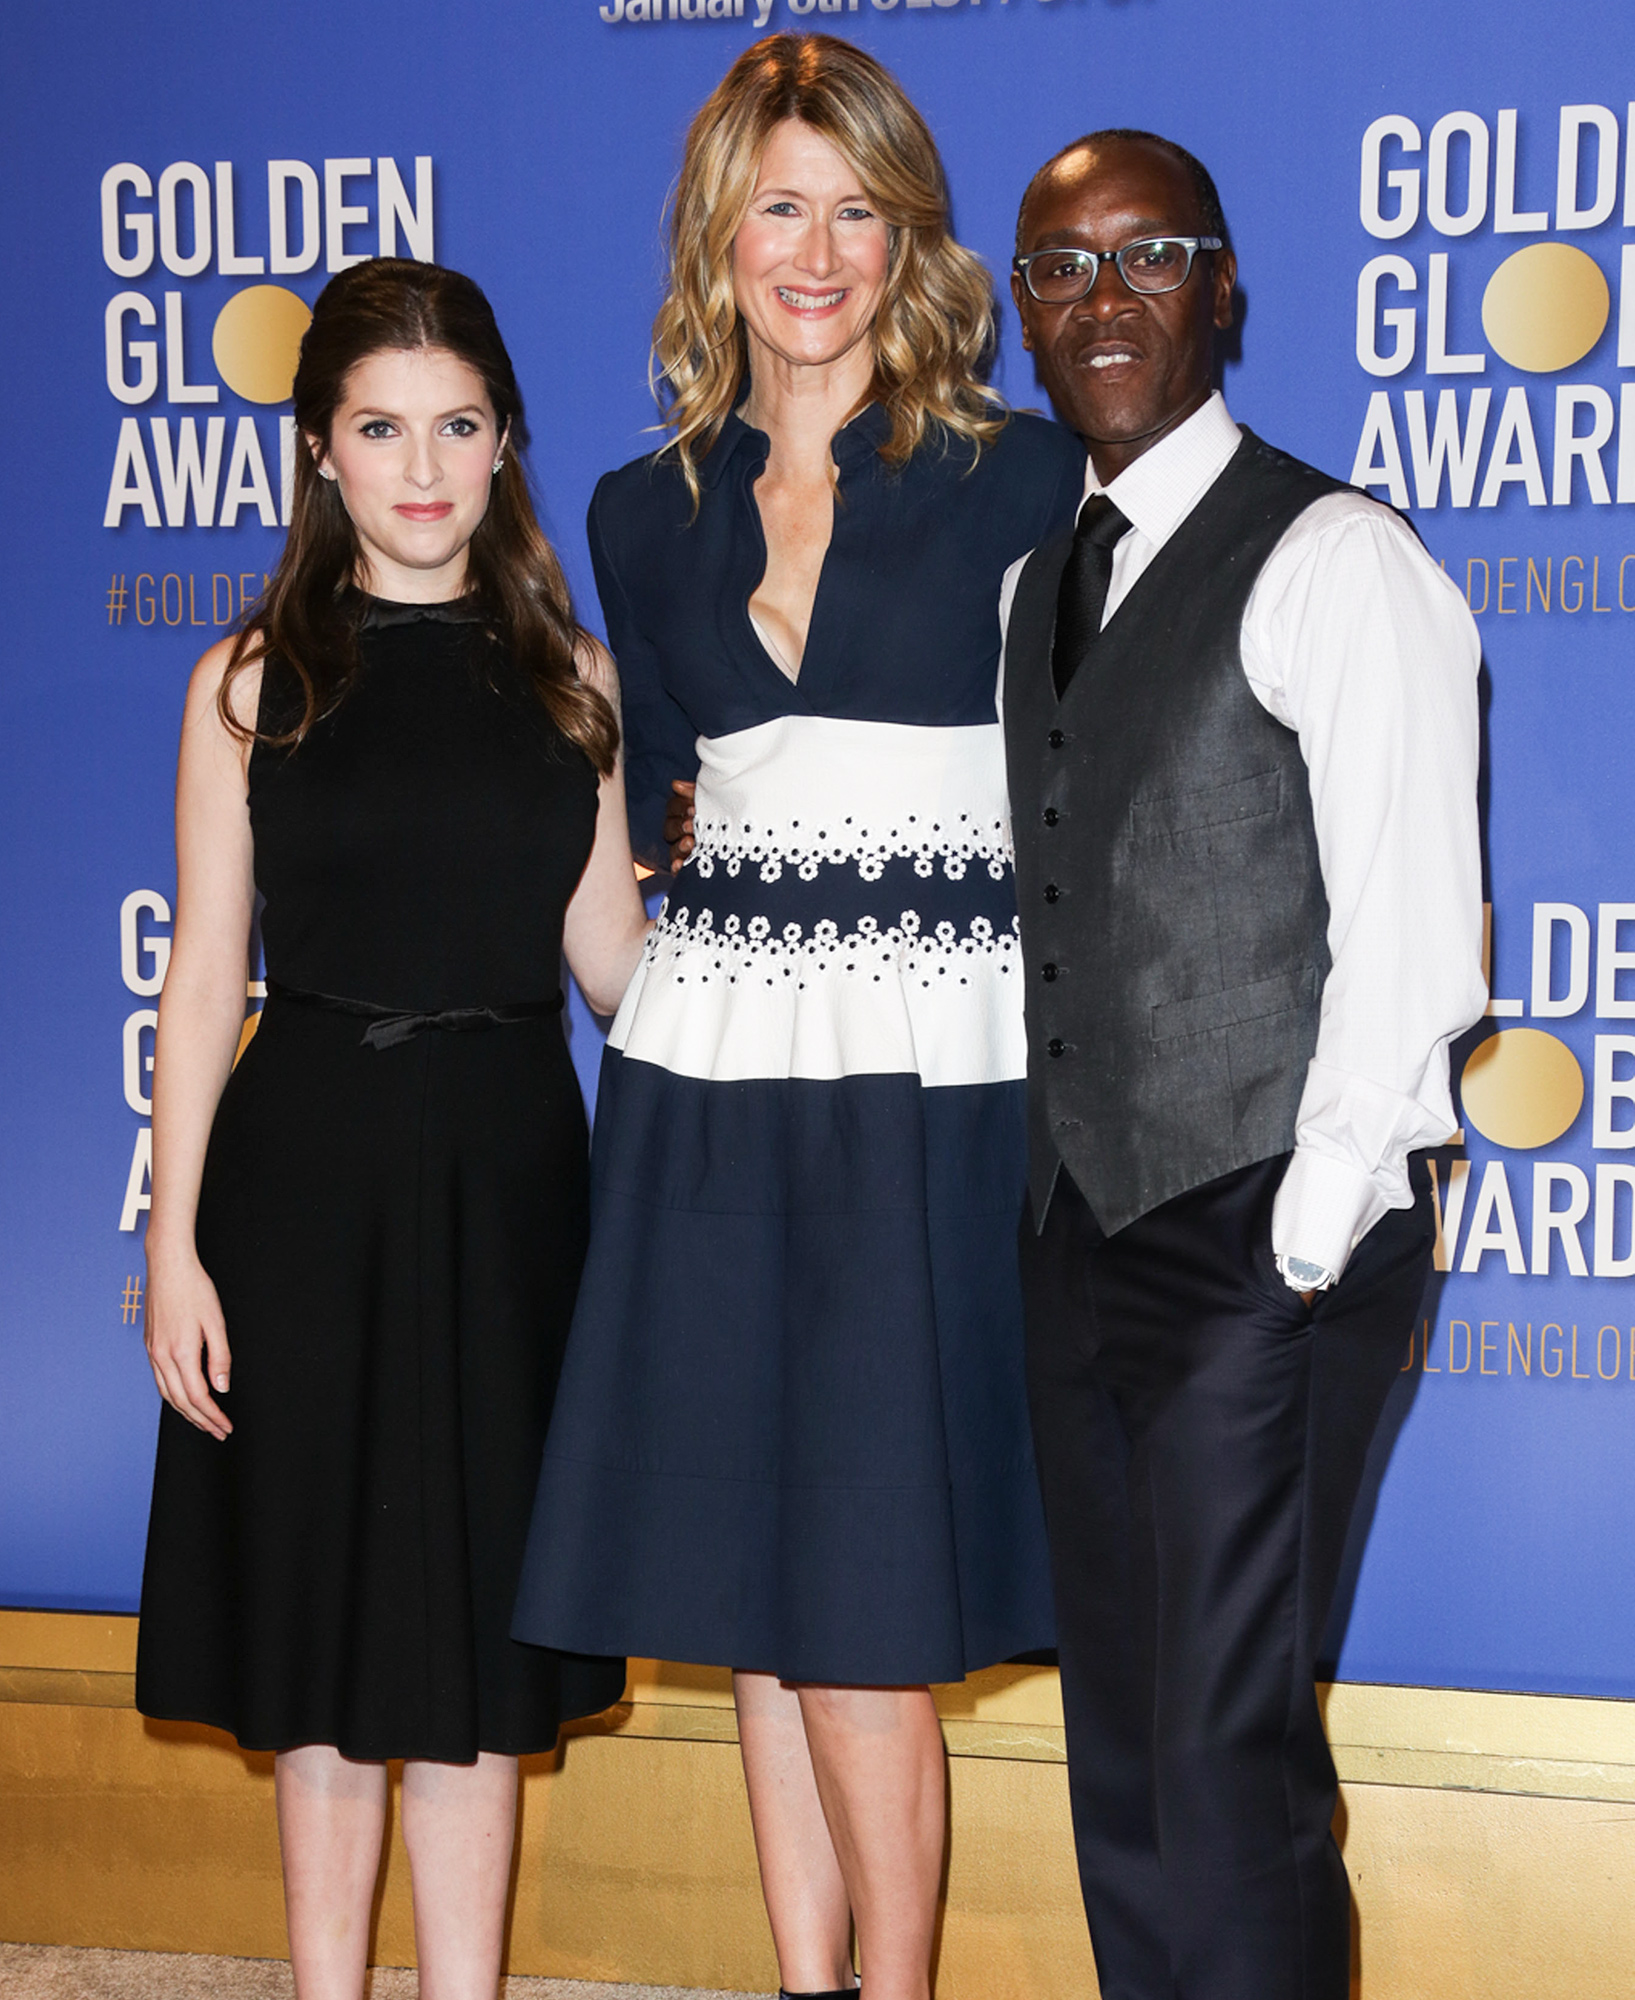 The 74th Annual Golden Globe Awards Nominations Announcement